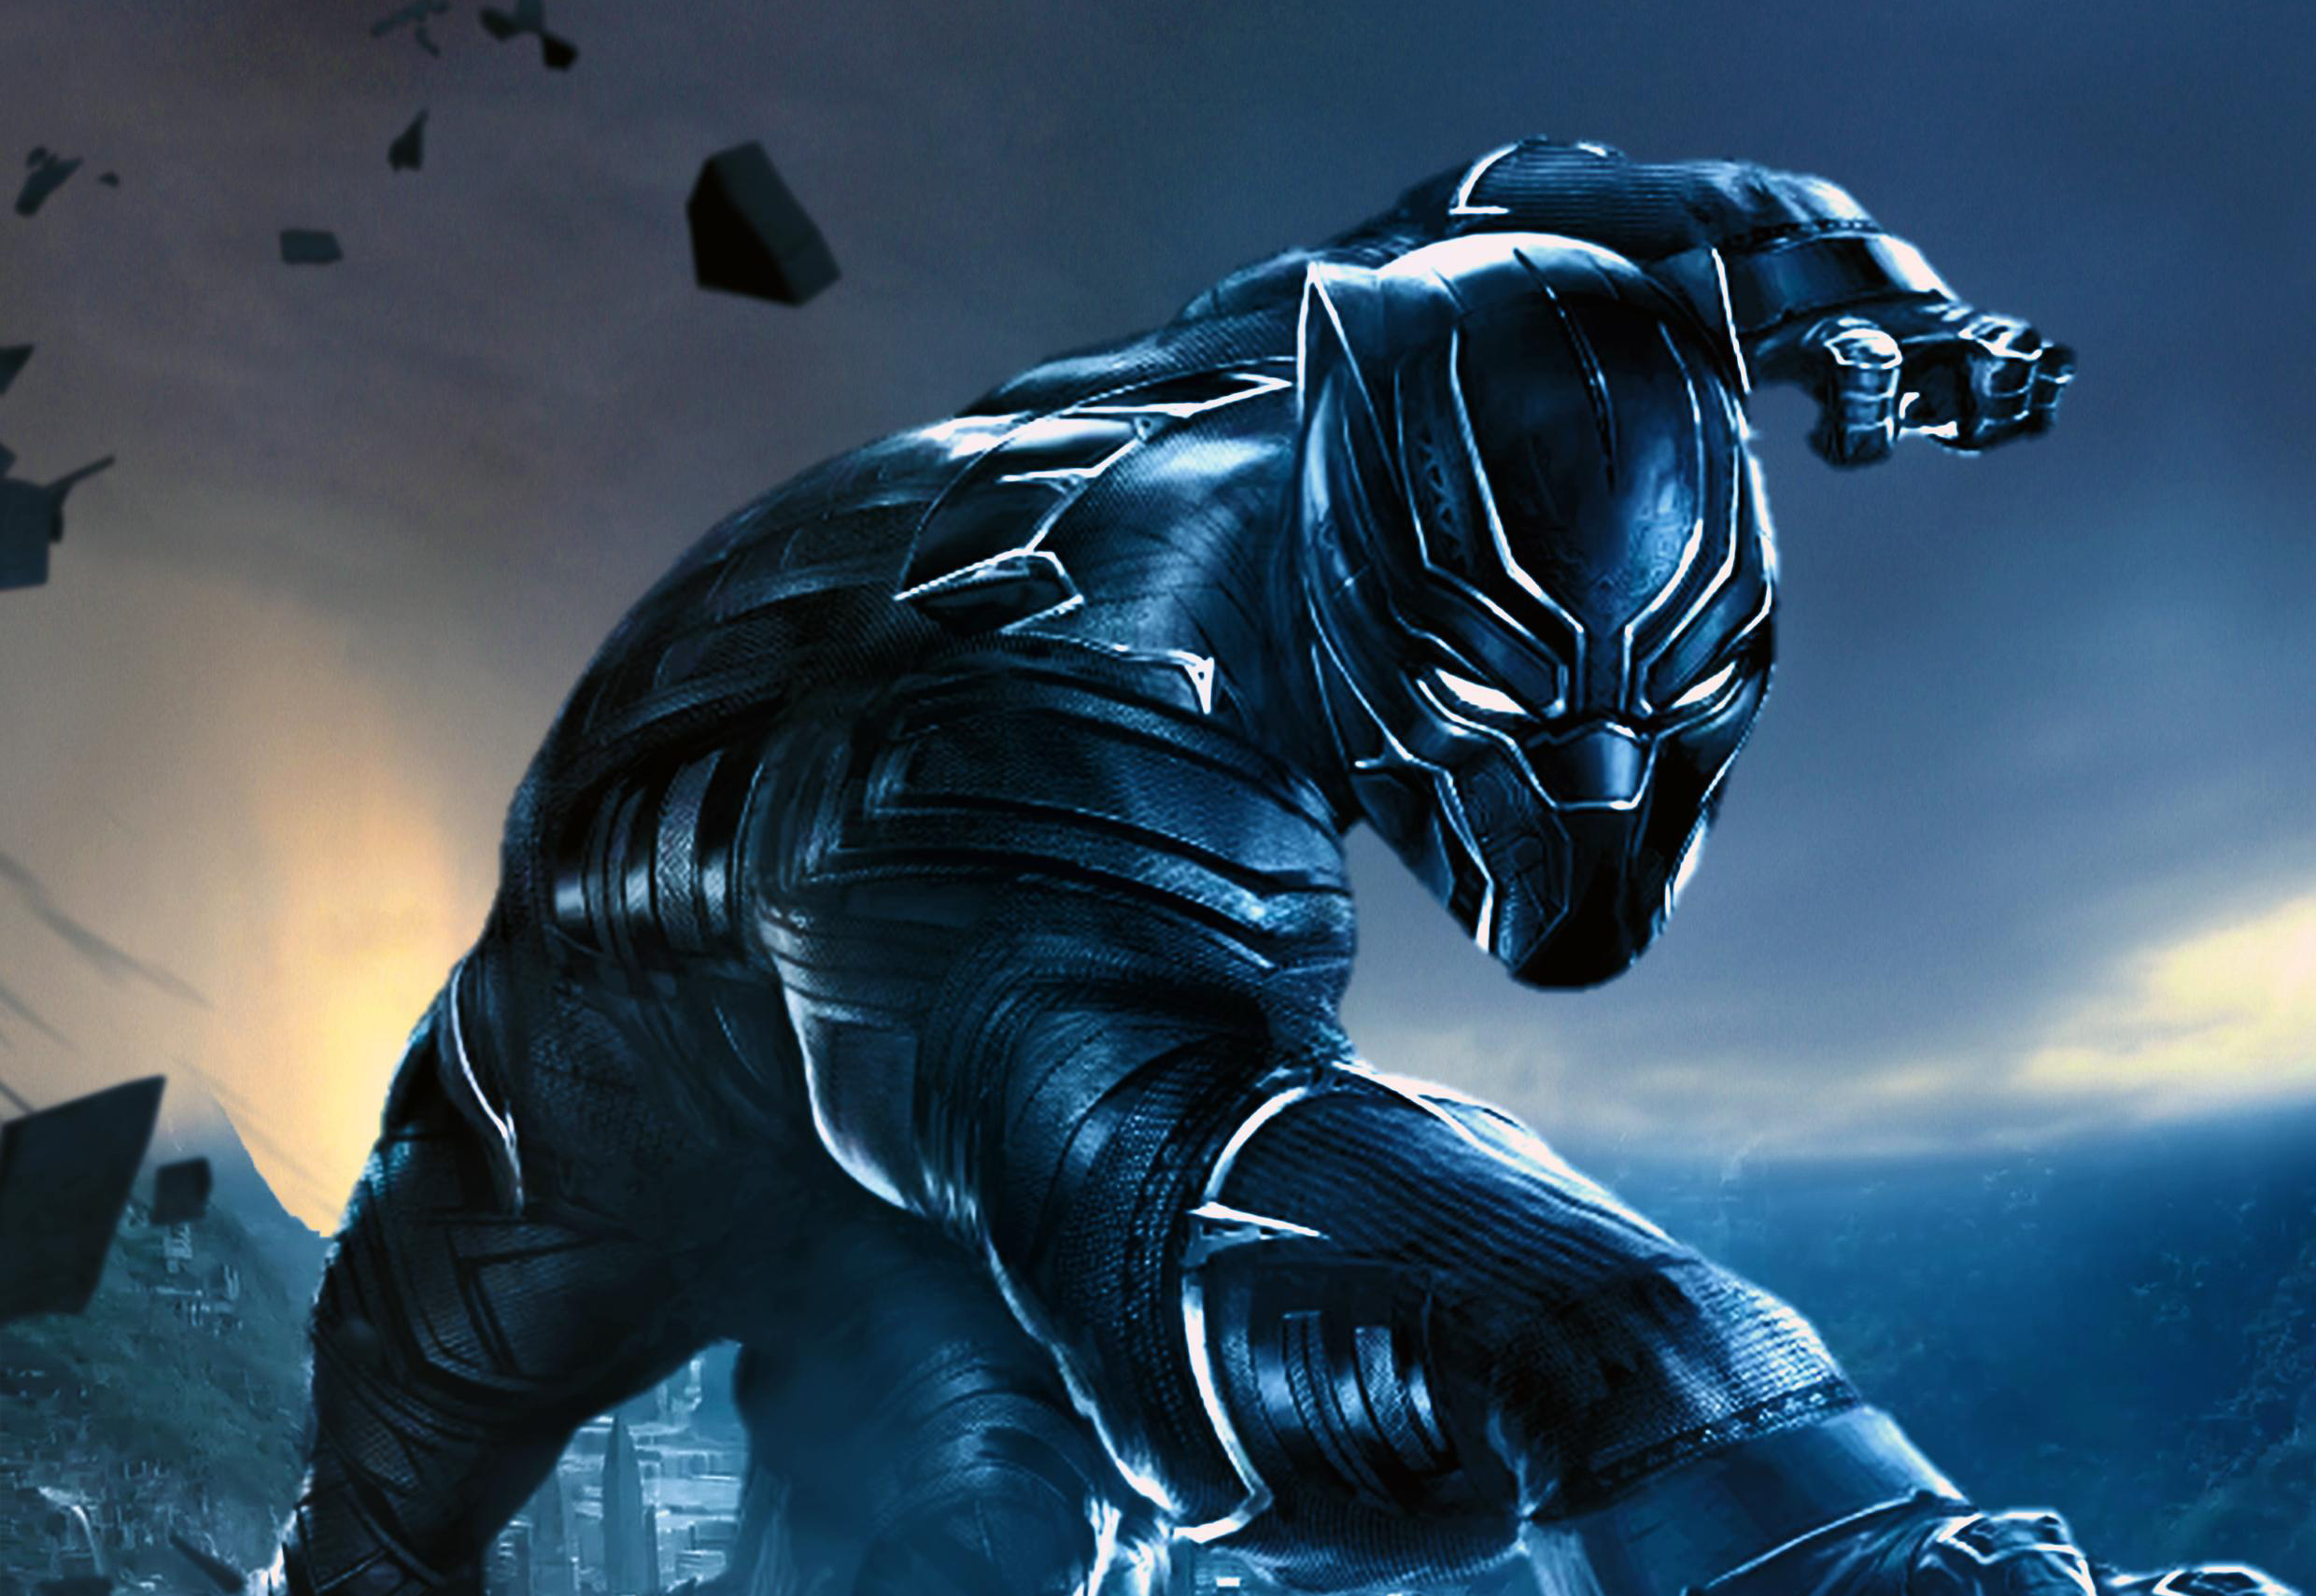 Black Panther Fan Made Hd Movies 4k Wallpapers Images